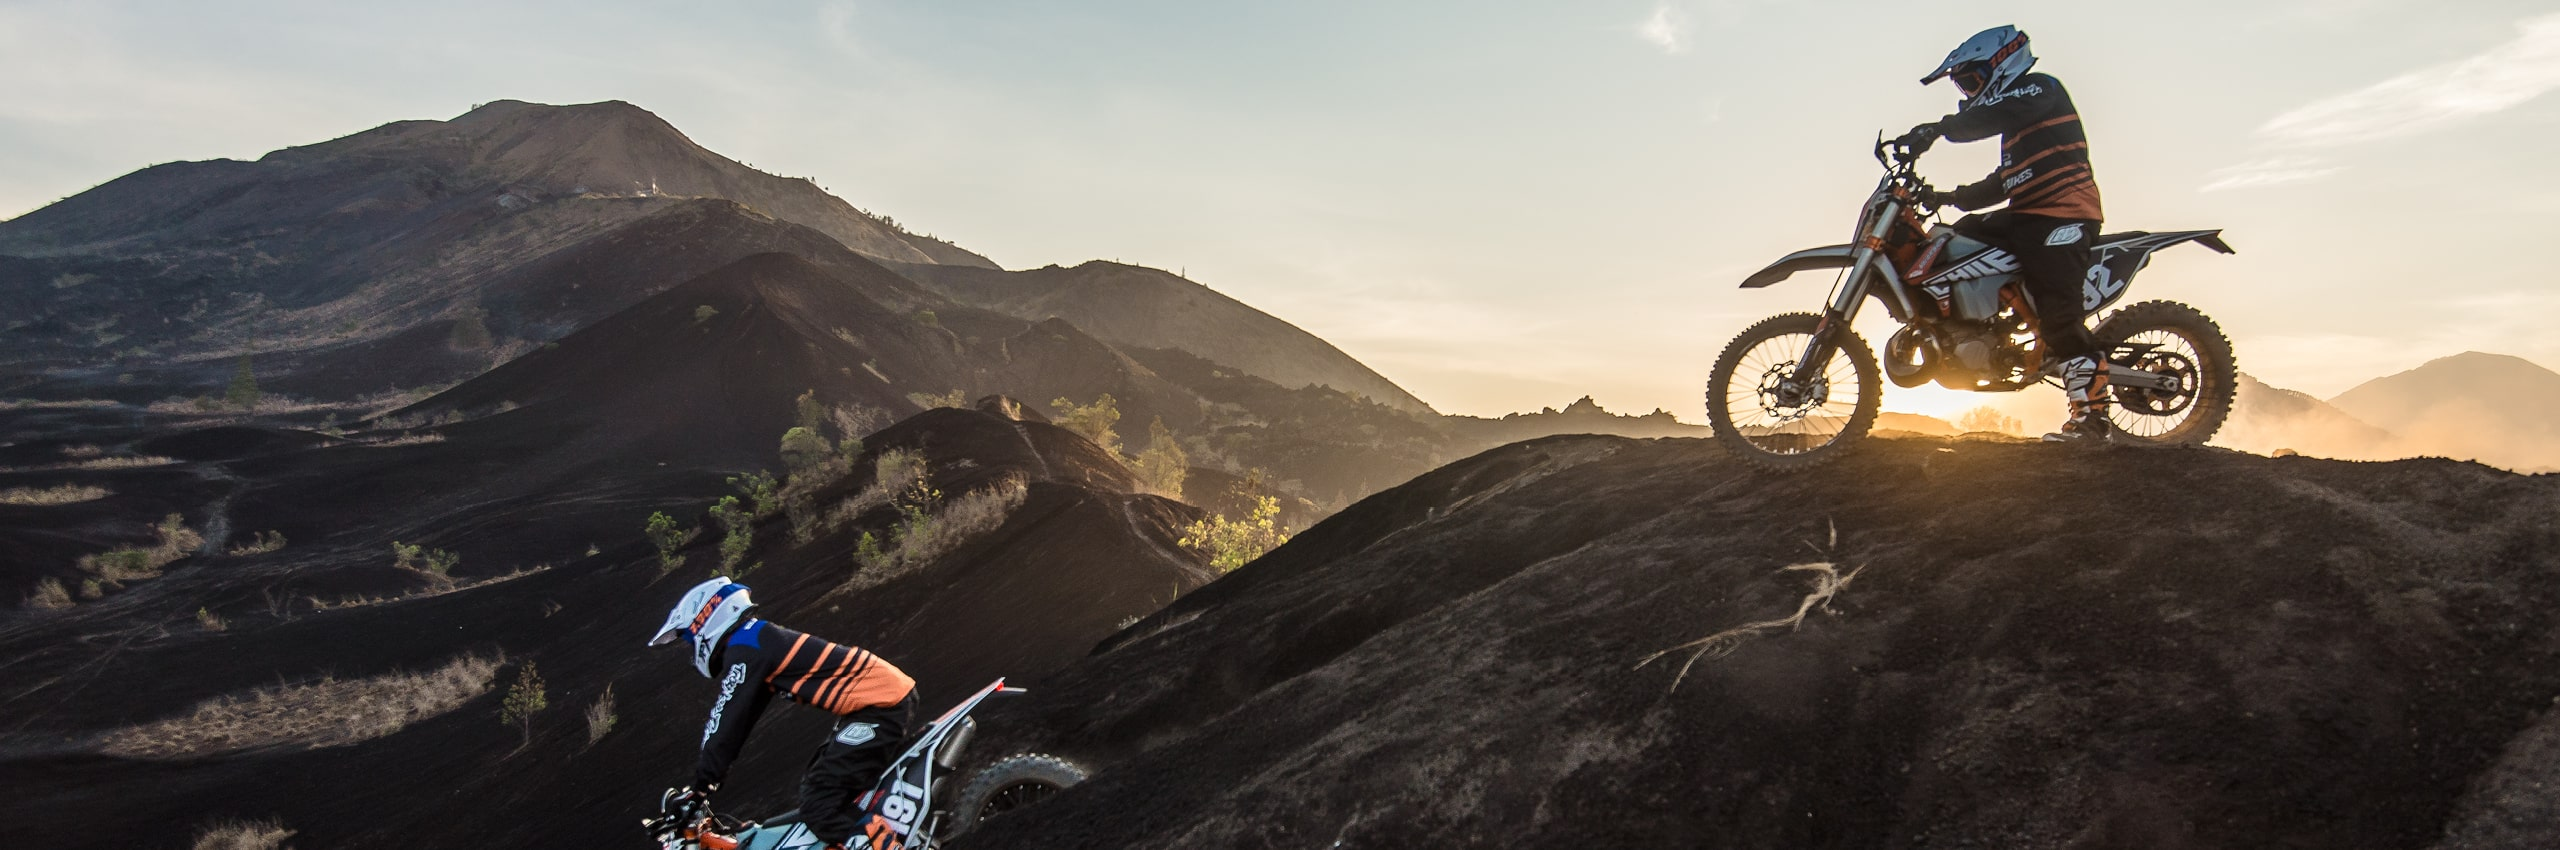 Bali_Dirt_Bikes_Kintamani_Black_Lava_Slider11